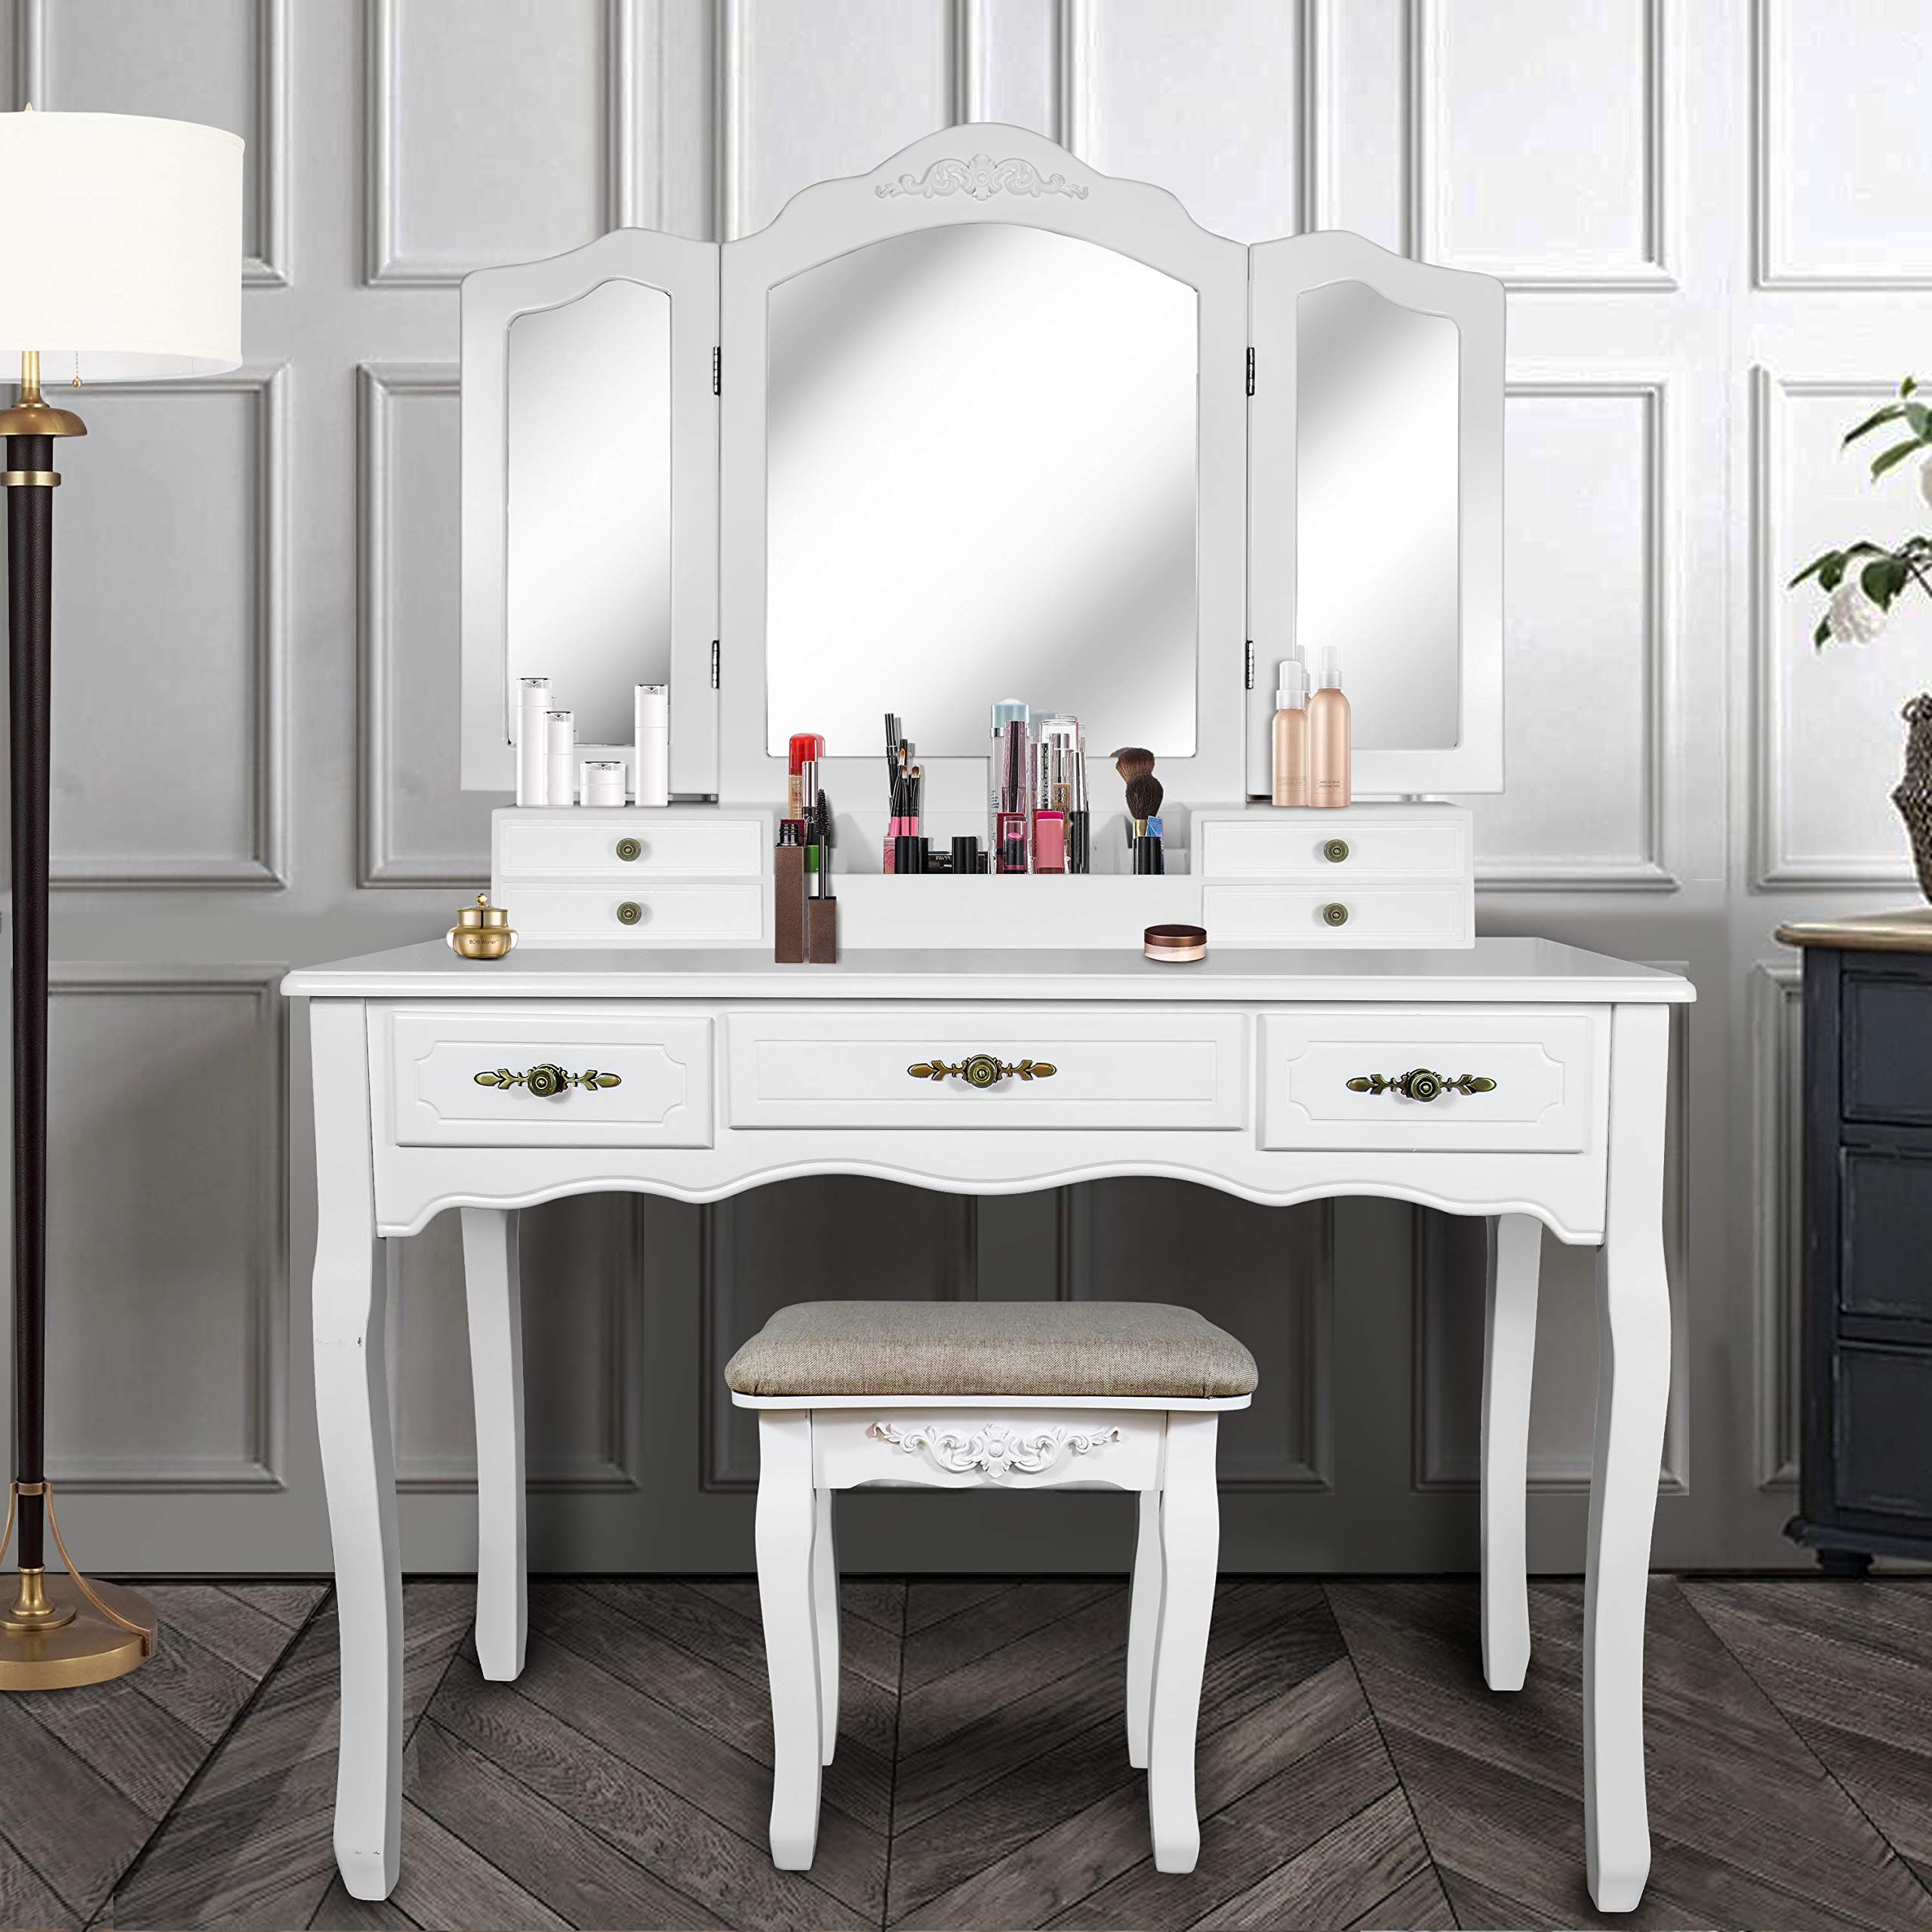 Vanity Beauty Station,Large Tri-Folding Necklace Hooked Mirrors,6 Organization 7 Drawers Makeup Dress Table with Cushioned Stool Set - White by ENSTVER (Image #2)